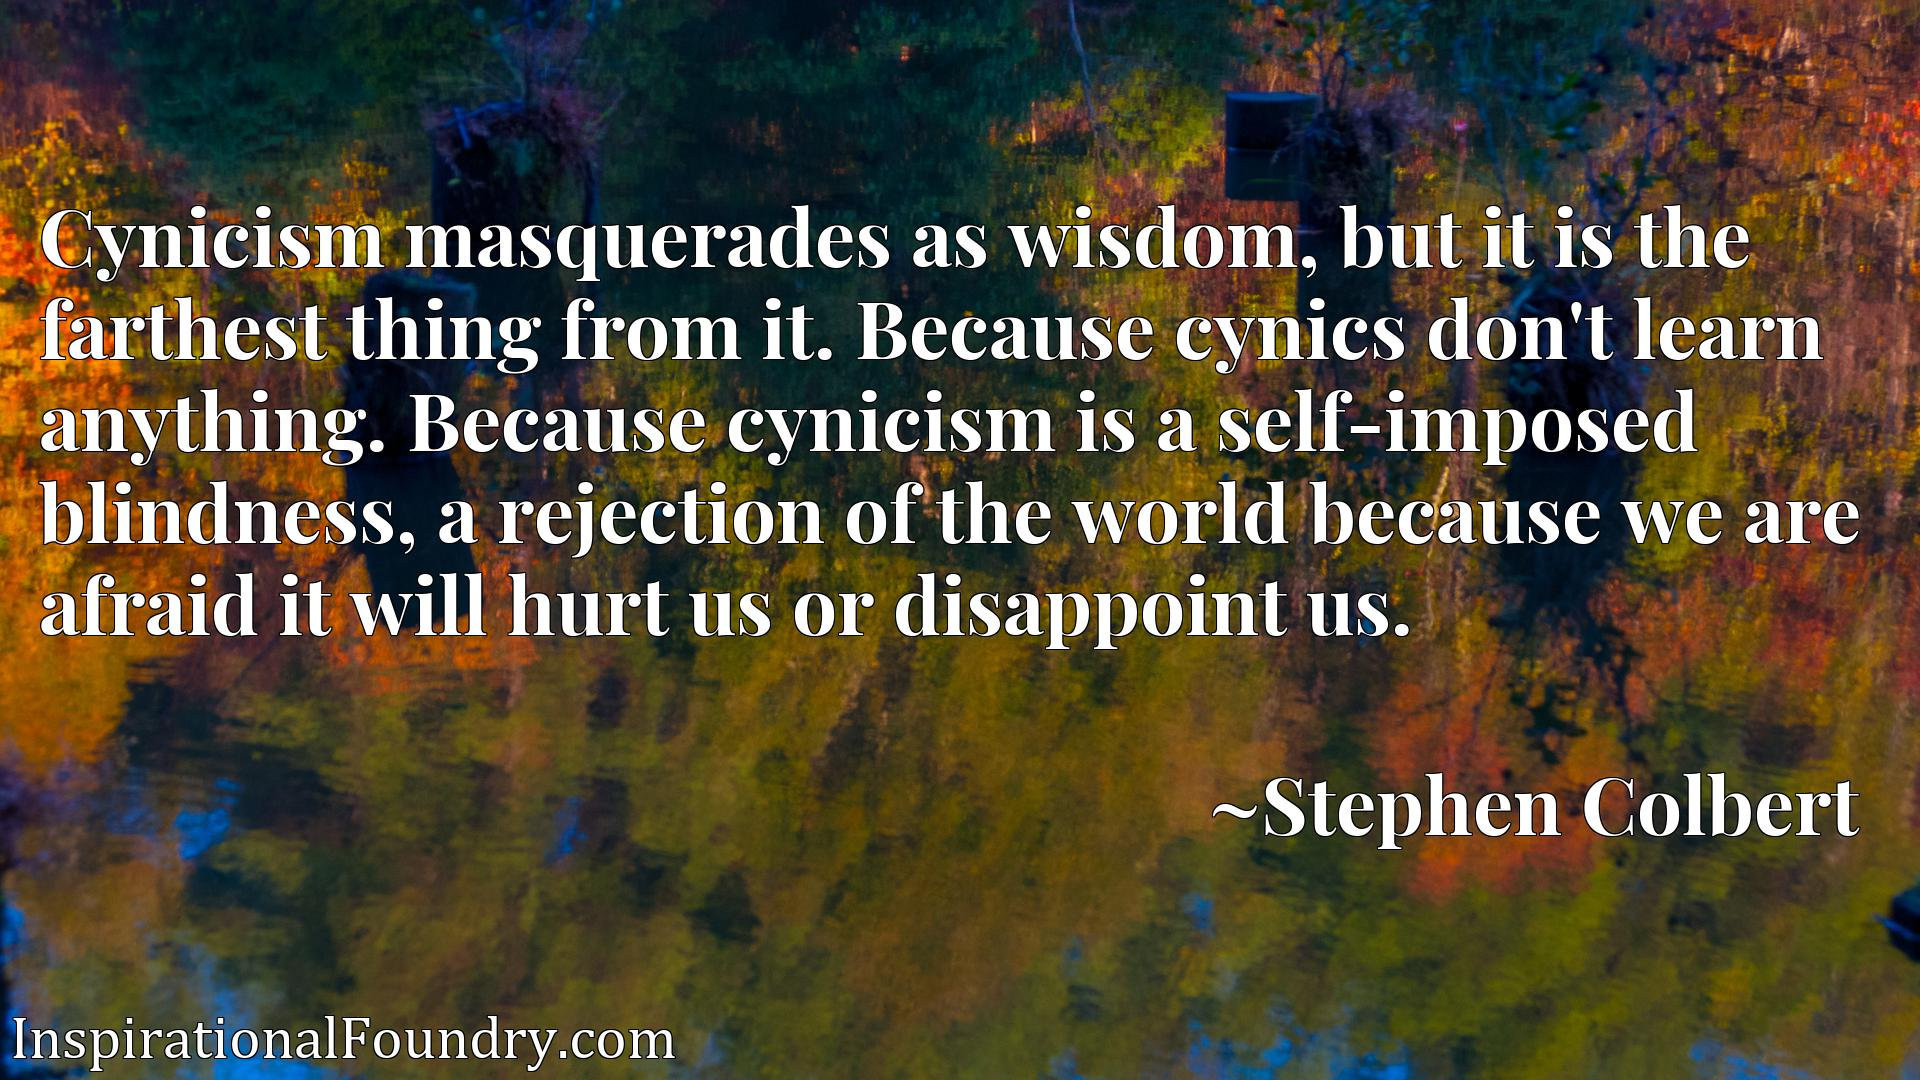 Cynicism masquerades as wisdom, but it is the farthest thing from it. Because cynics don't learn anything. Because cynicism is a self-imposed blindness, a rejection of the world because we are afraid it will hurt us or disappoint us.